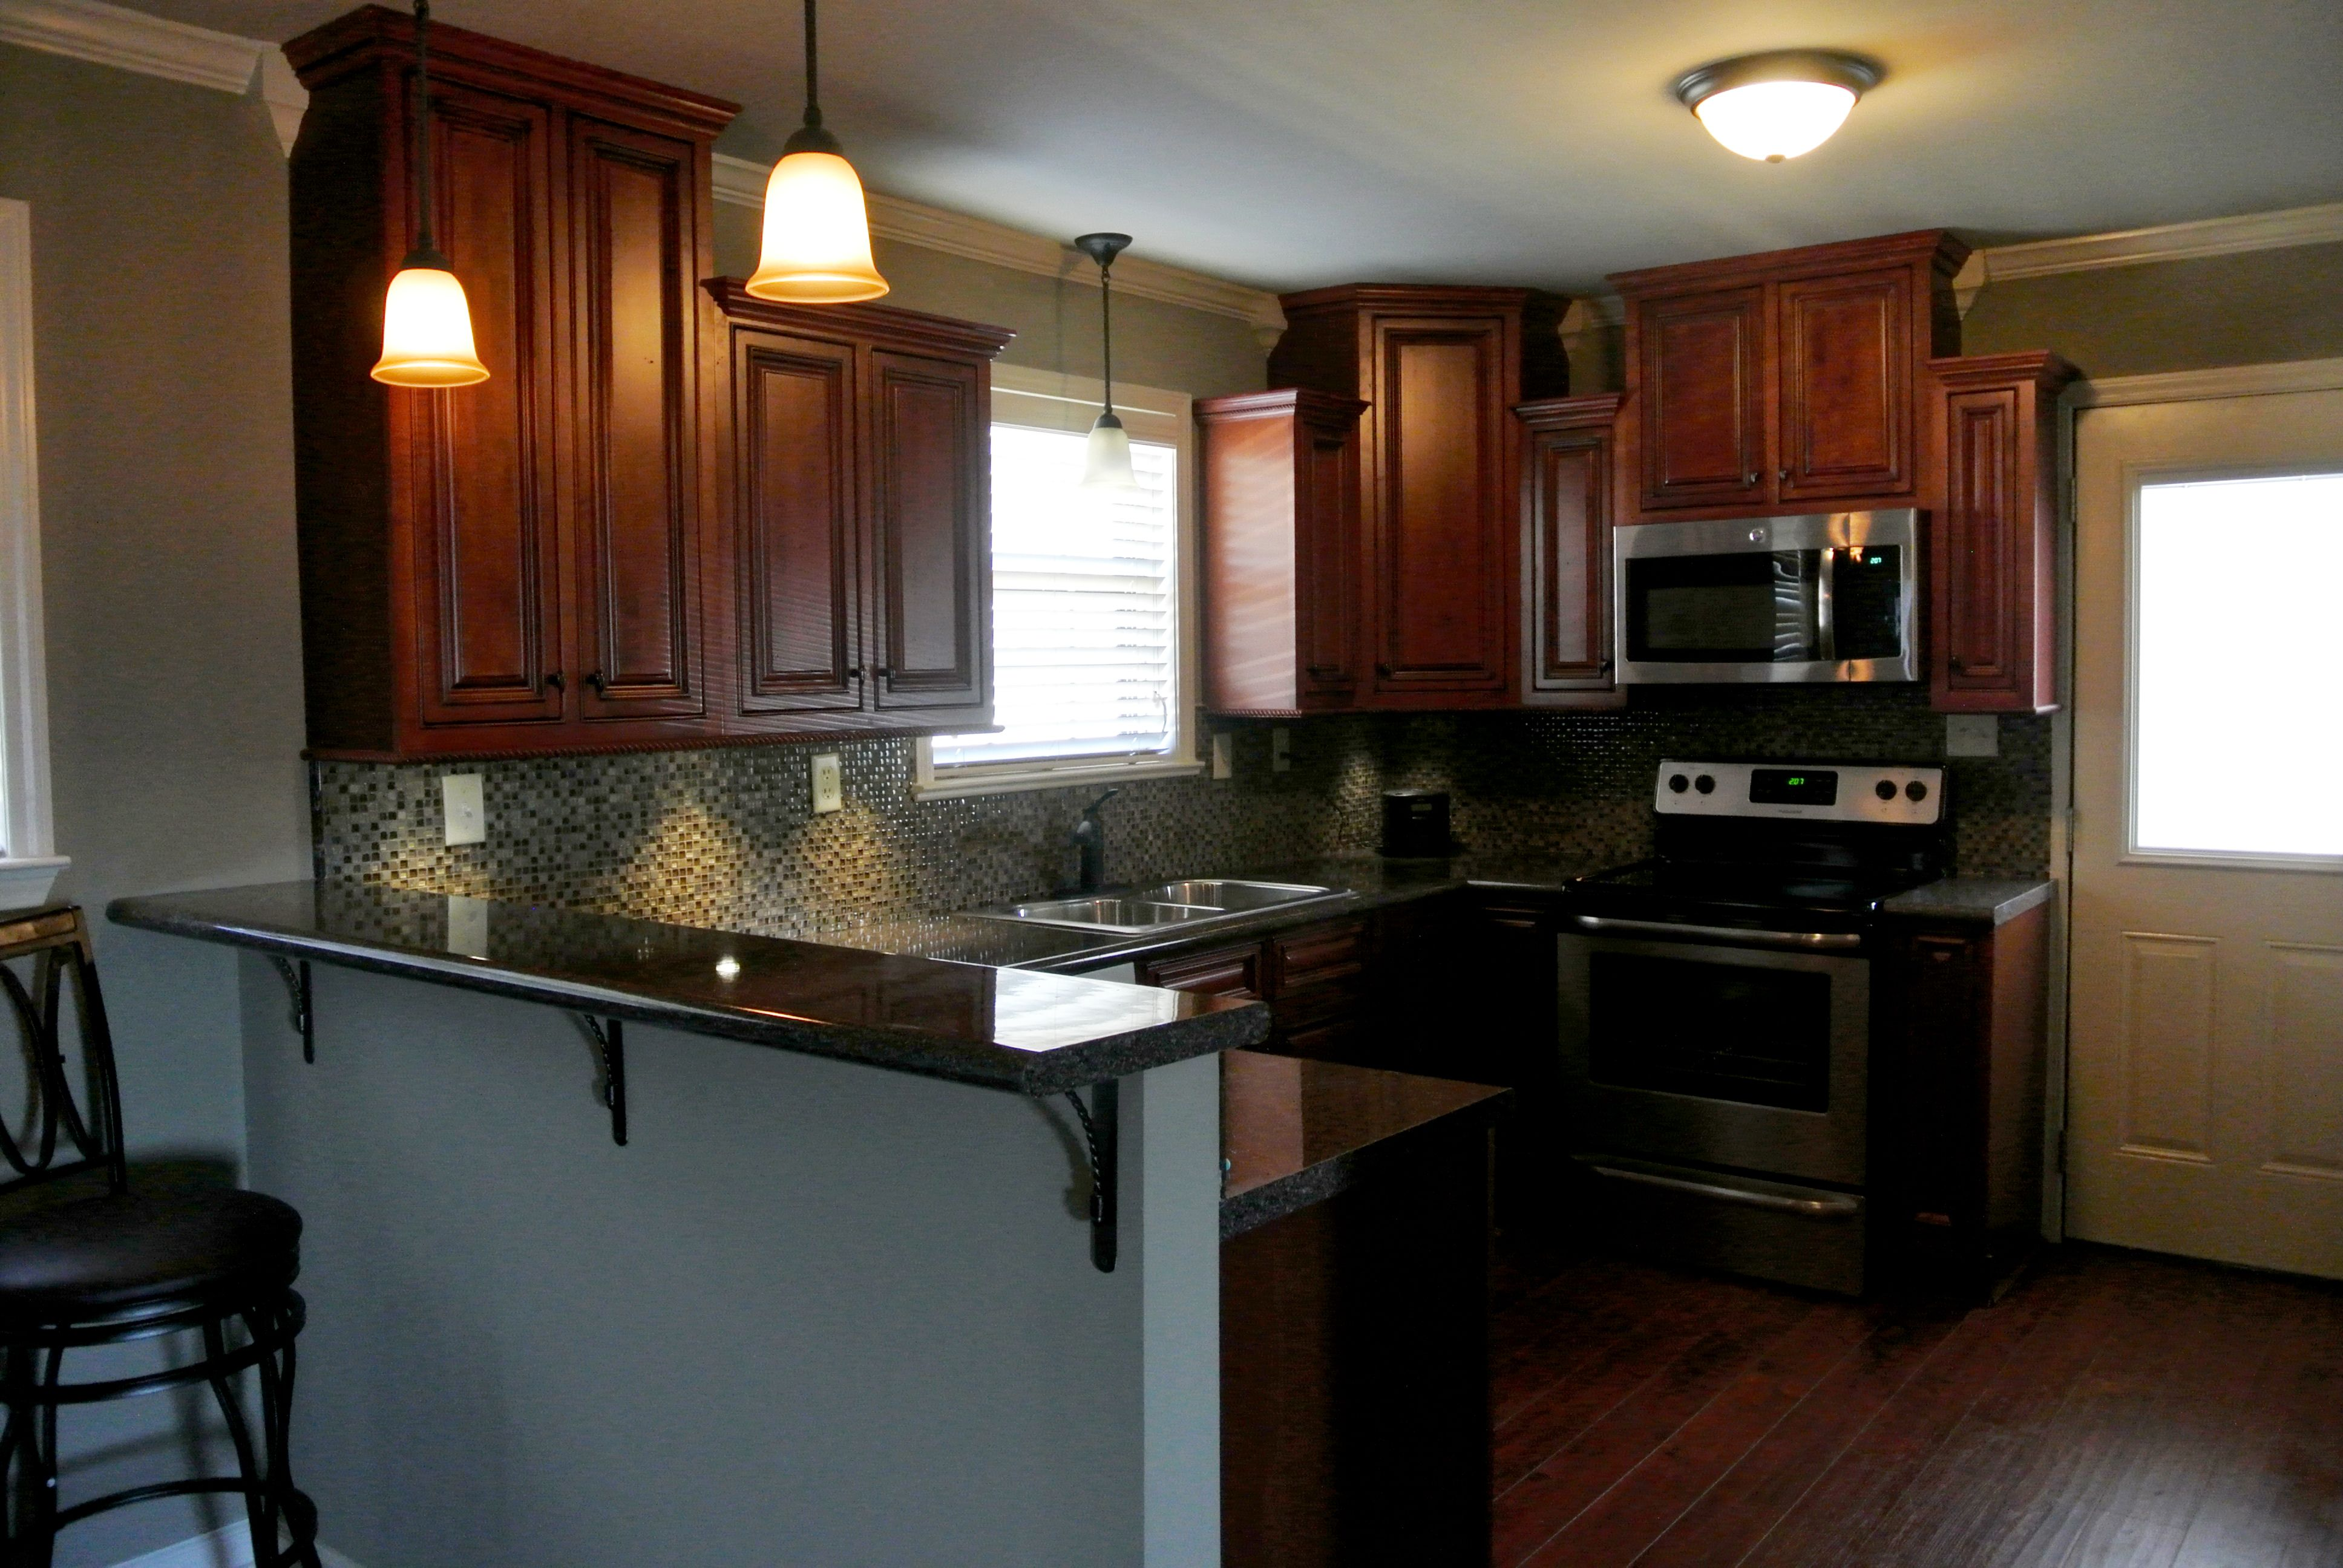 Kitchen remodel by Laura T. of Montgomery, AL. The ...